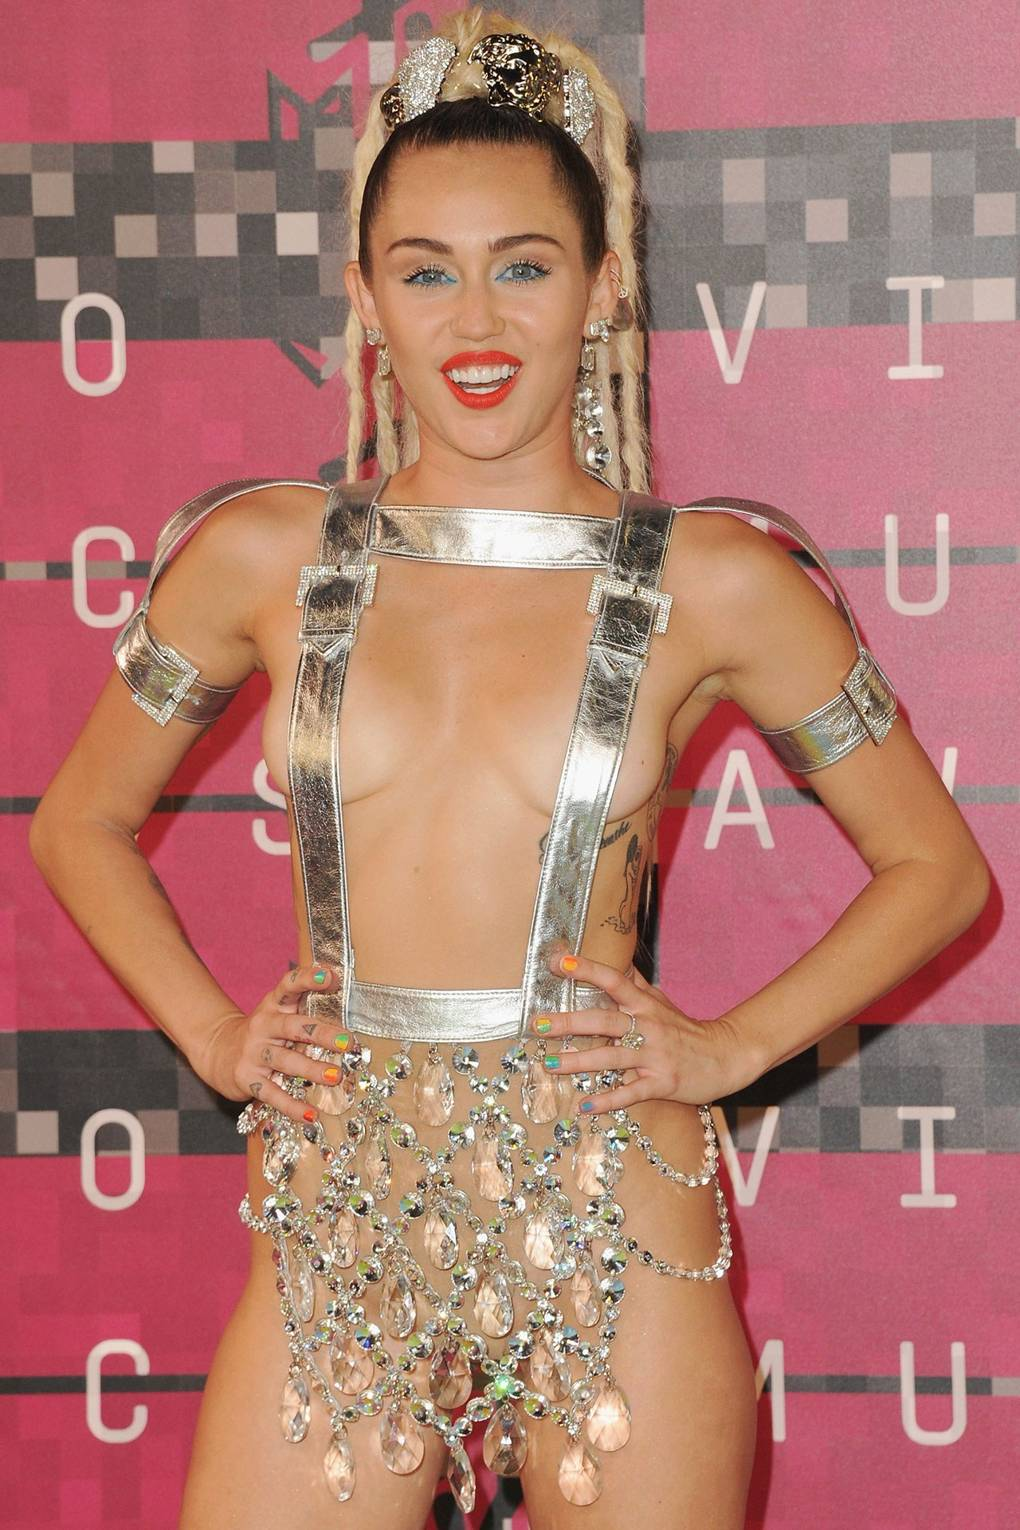 Mylie cyrus naked